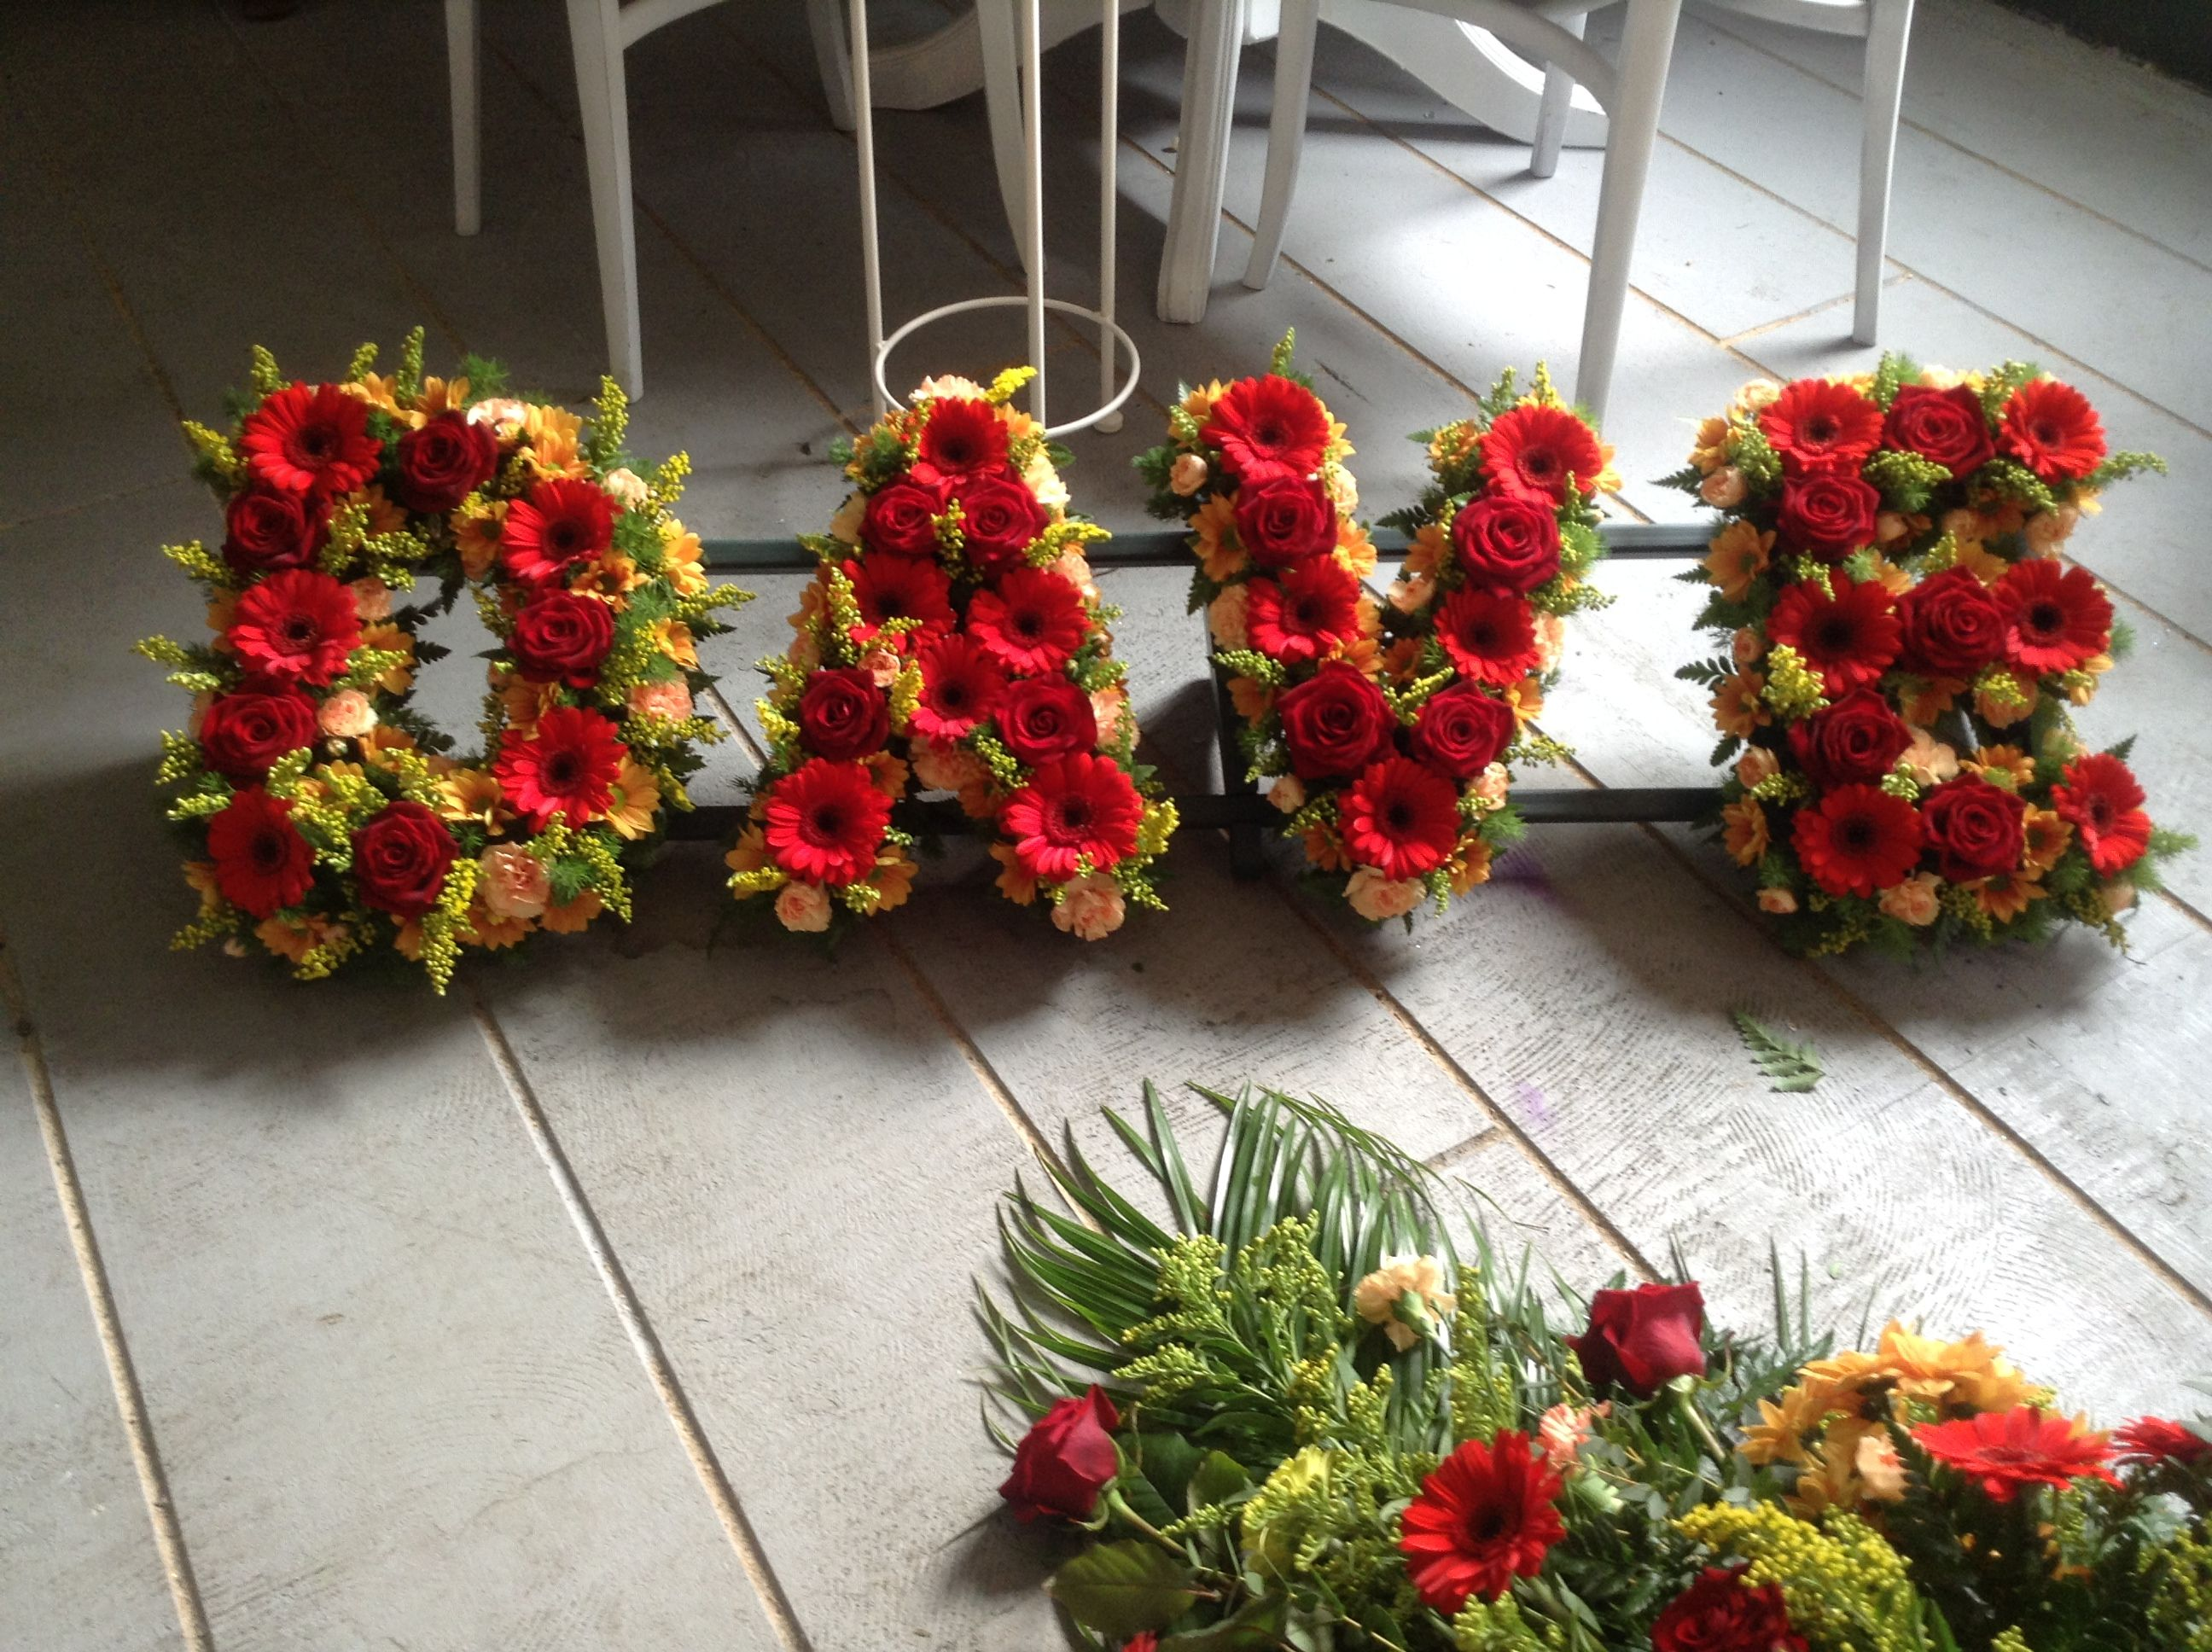 Funeral flowers dave funeral flower letter tribute red gerberas funeral flowers dave funeral flower letter tribute red gerberas red and gold letter izmirmasajfo Choice Image